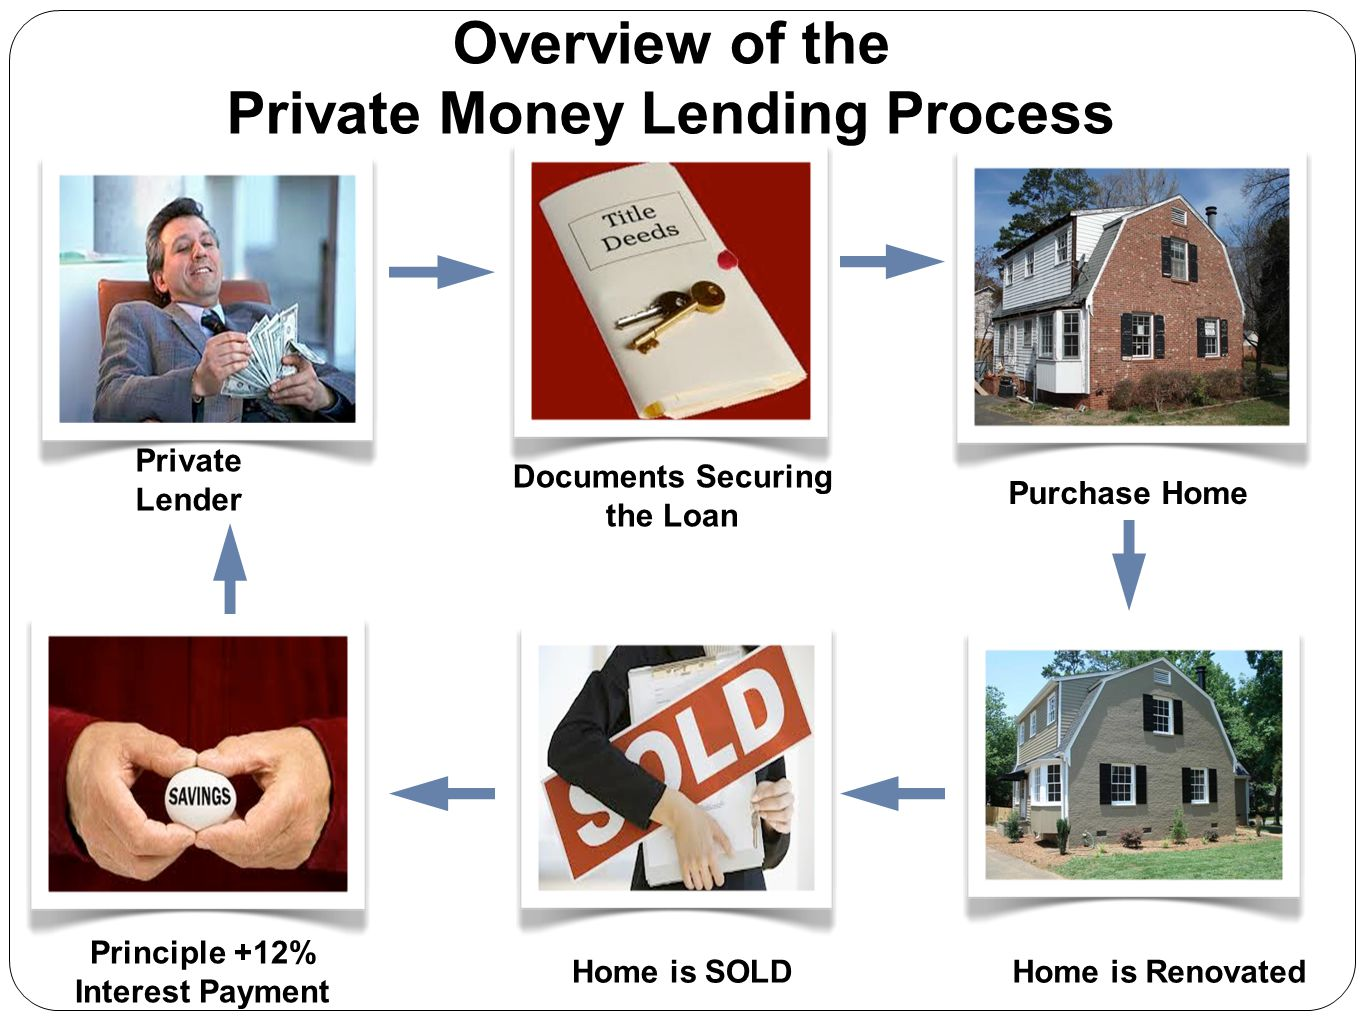 Private Lender Home is Renovated Principle +12% Interest Payment Documents Securing the Loan Purchase Home Home is SOLD Overview of the Private Money